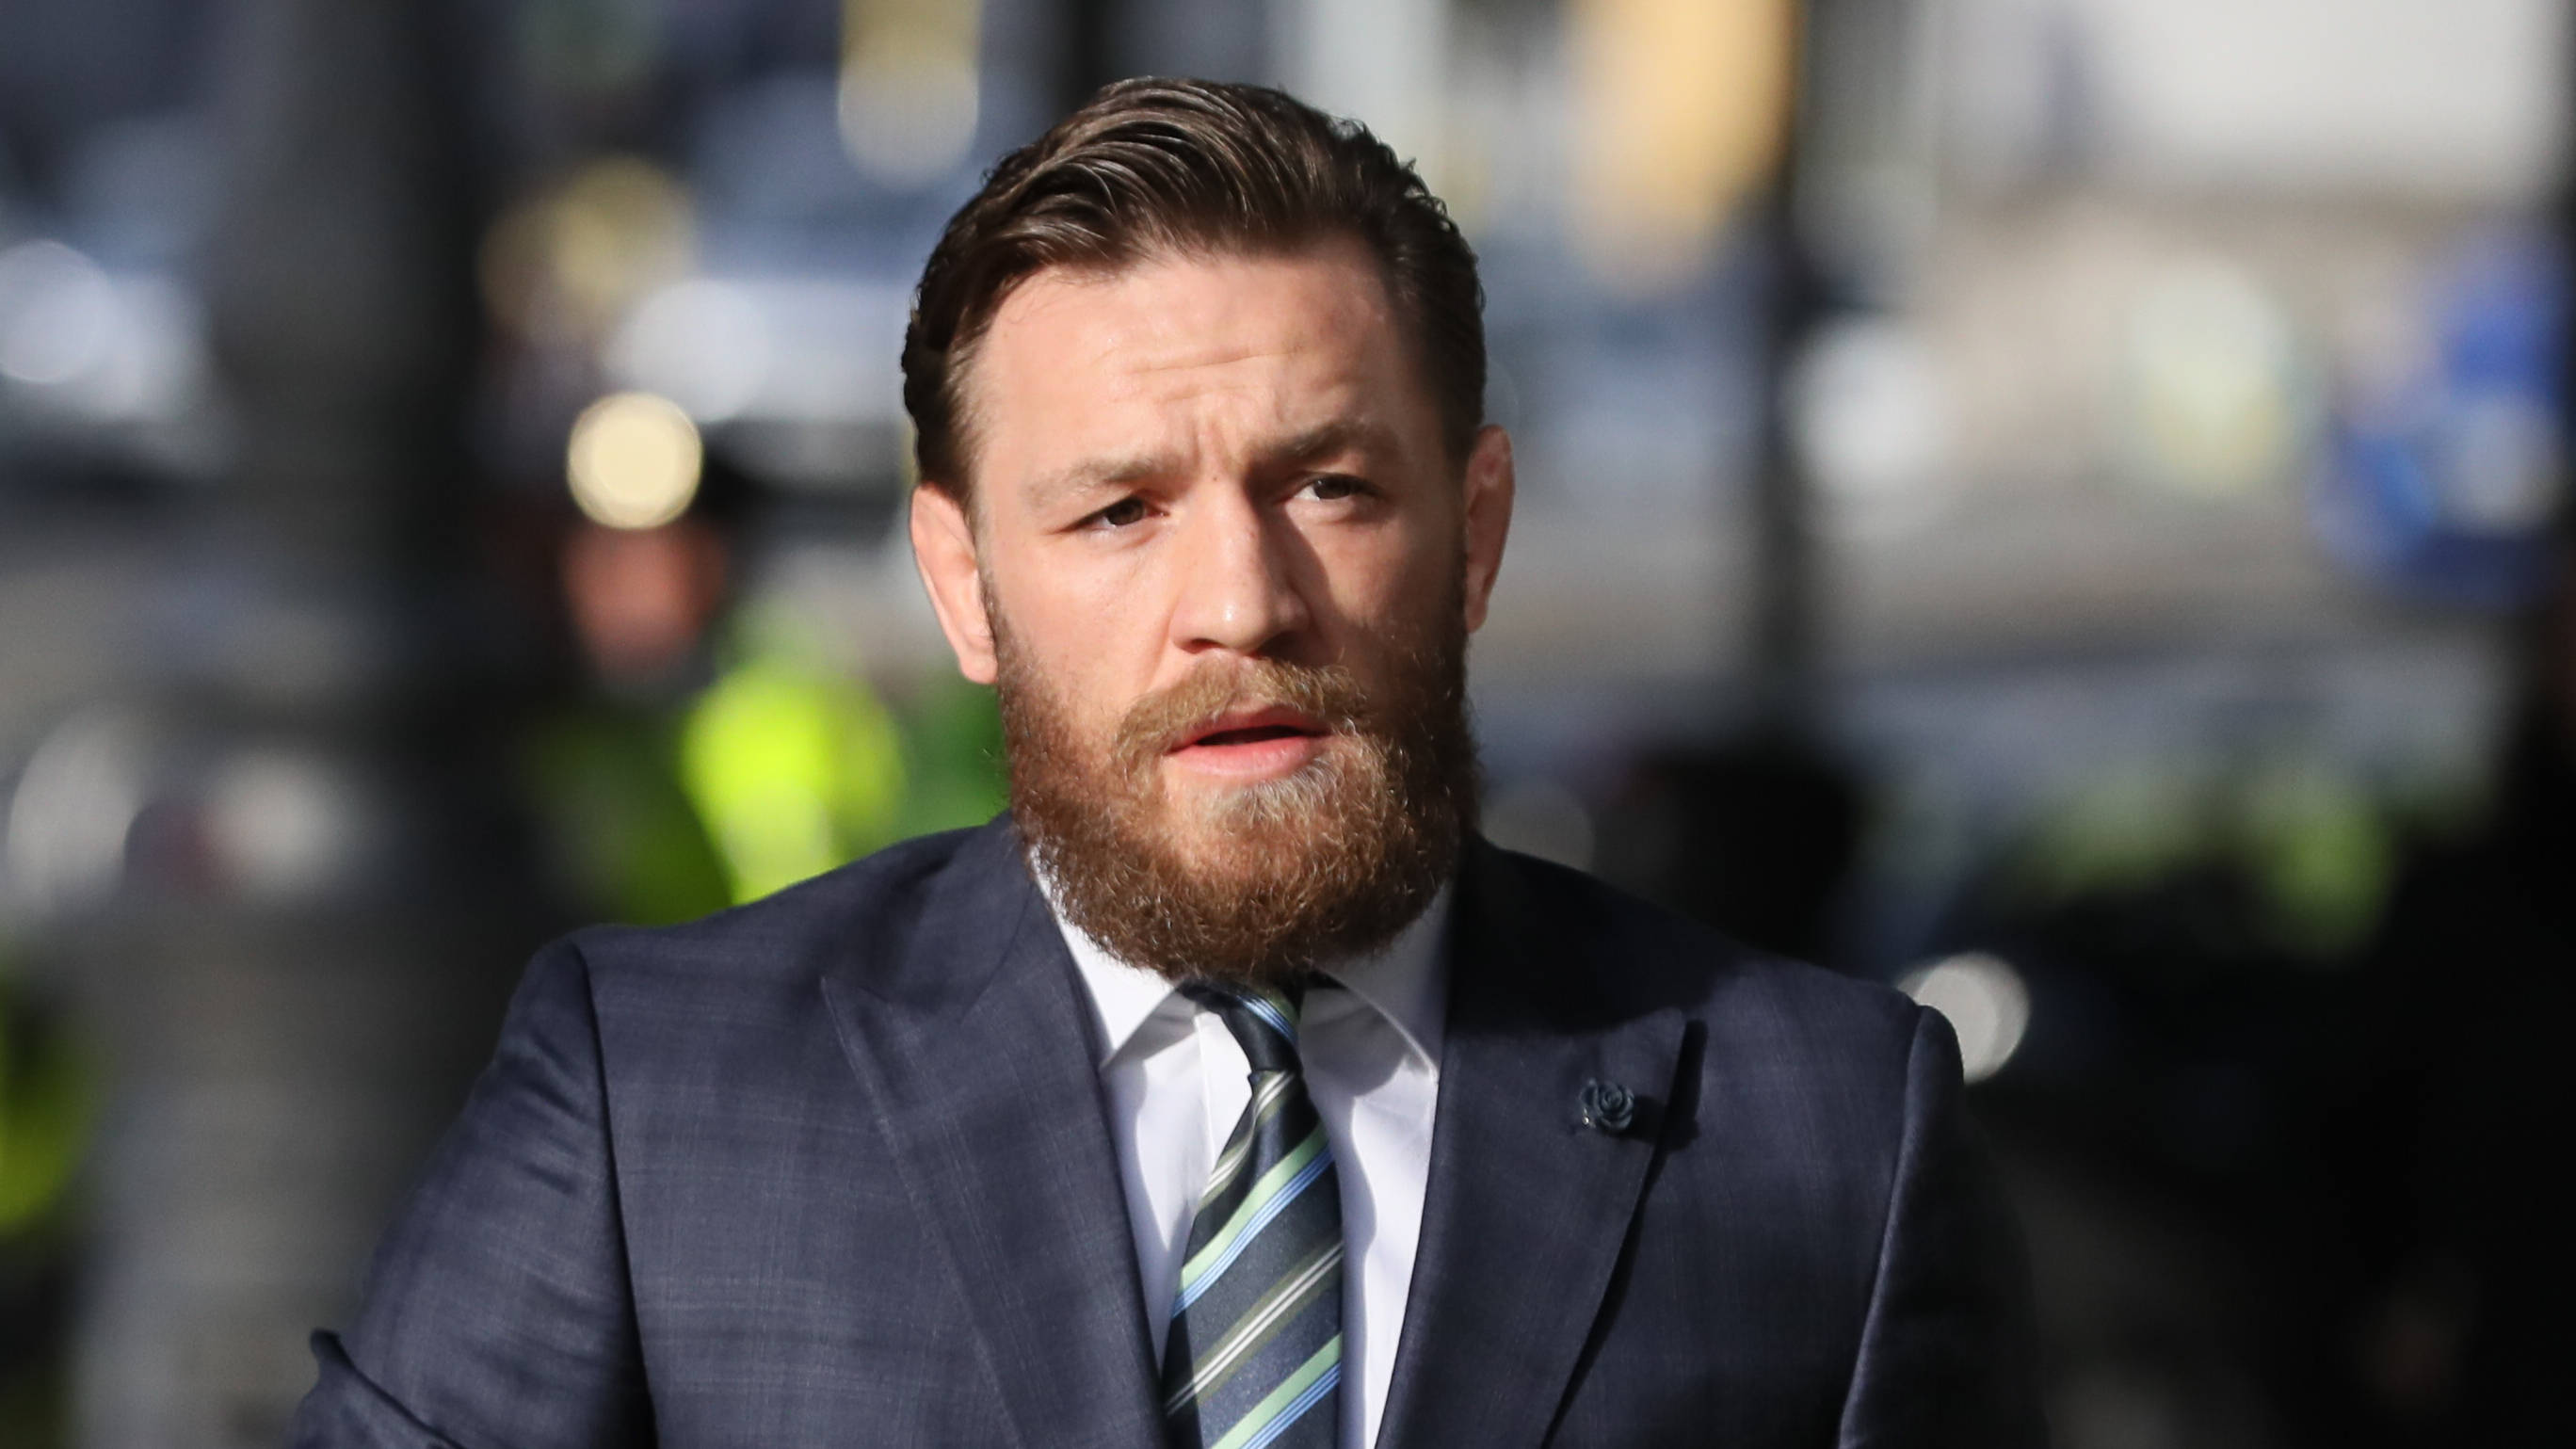 Conor McGregor arrested for 'attempted sexual assault and exhibition' - LBC